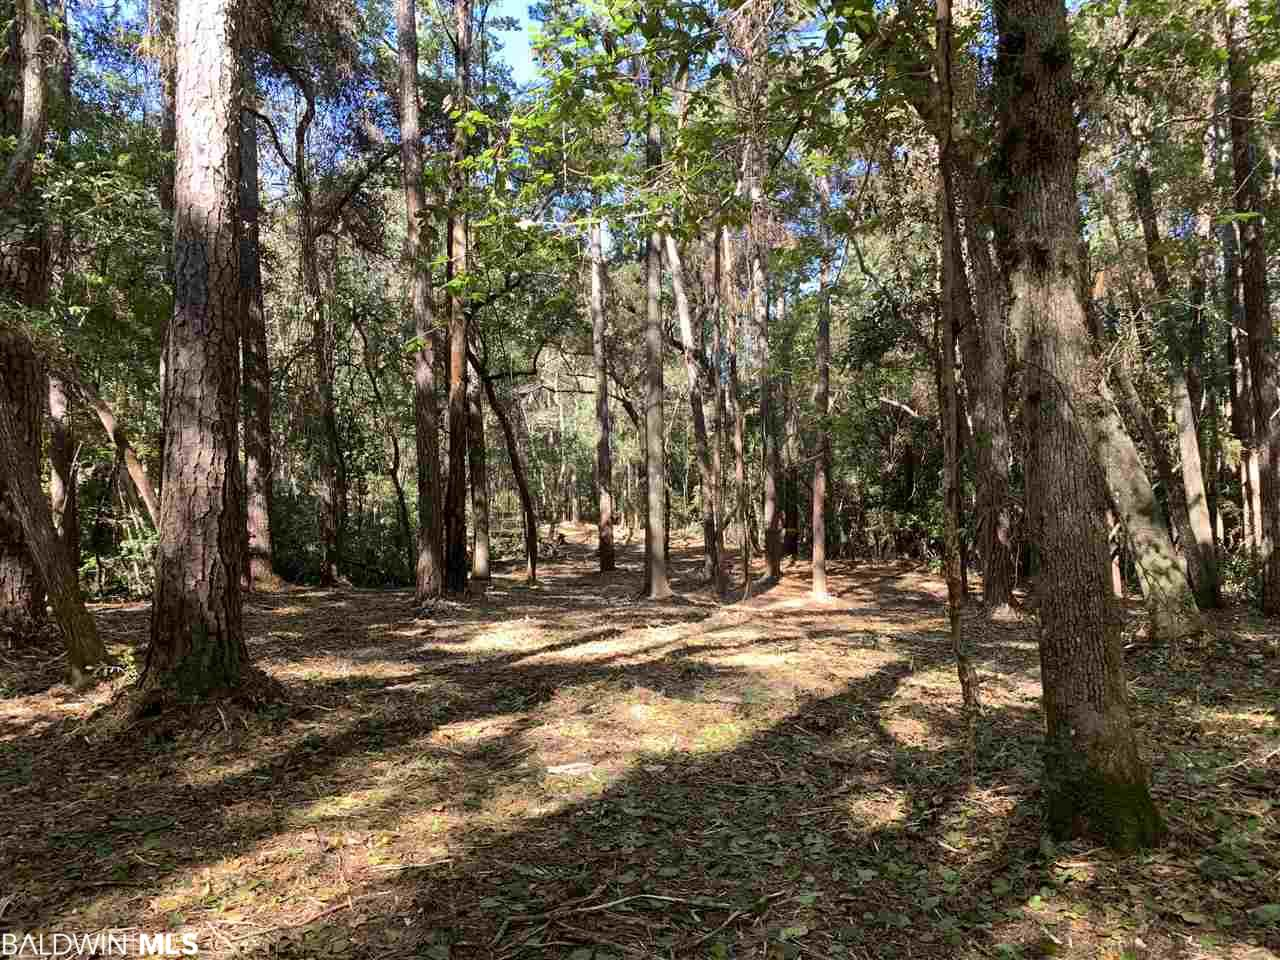 Underbrush recently cleared. Build your private dream home on approx 1.7 acres in Montrose , less than 5 mins from Old Towne Daphne & 5 mins from downtown Fairhope. On secluded cul-de-sac just off Main Street. Enjoy the natural setting as Rock Creek runs through property that can accommodate your canoe or kayak.